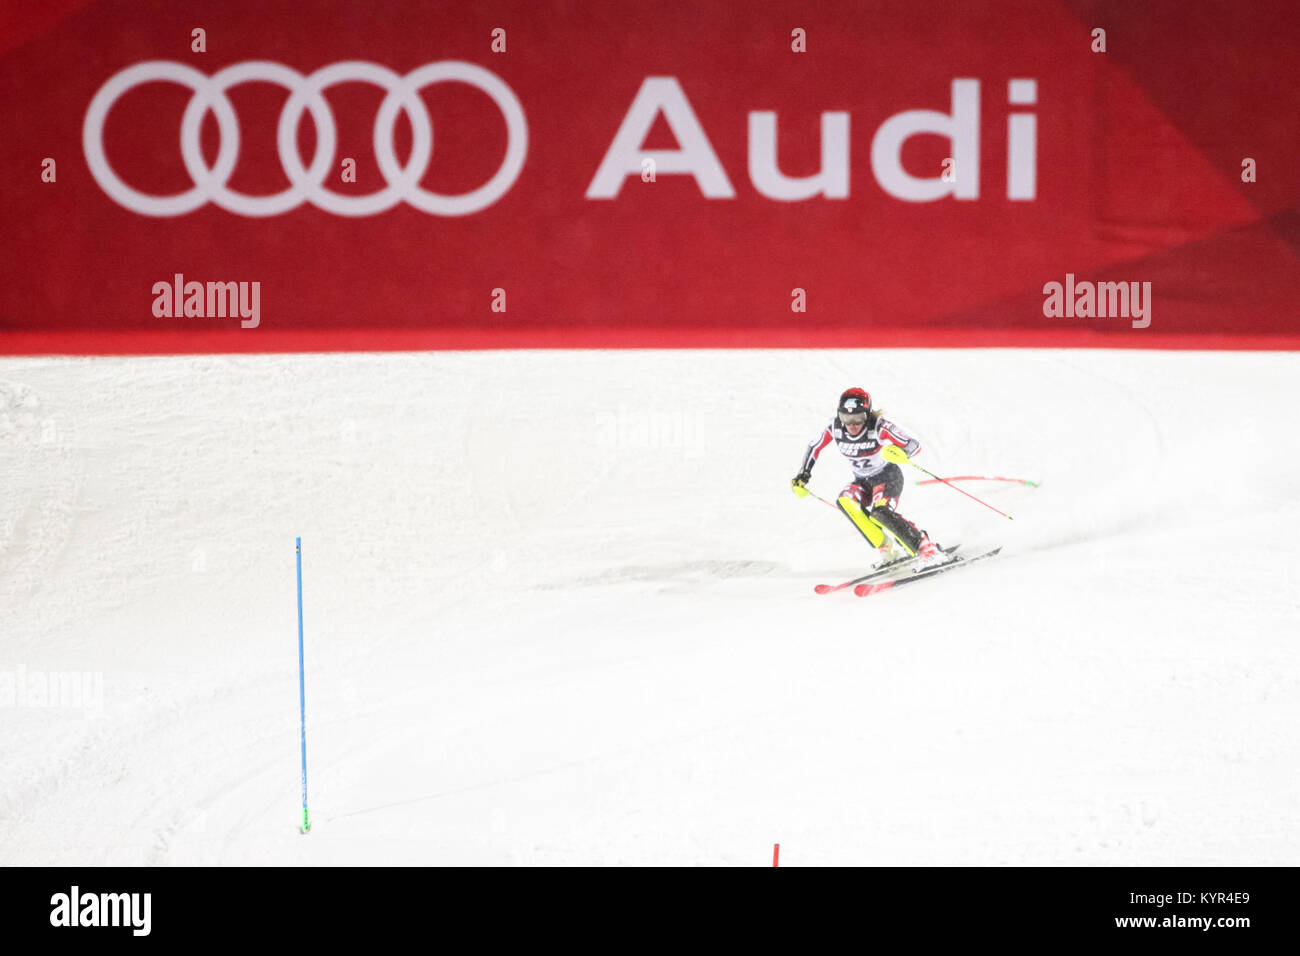 ZAGREB, CROATIA - JANUARY 3, 2018 : Mielzynski Erin of Can competes during the Audi FIS Alpine Ski World Cup Women's - Stock Image